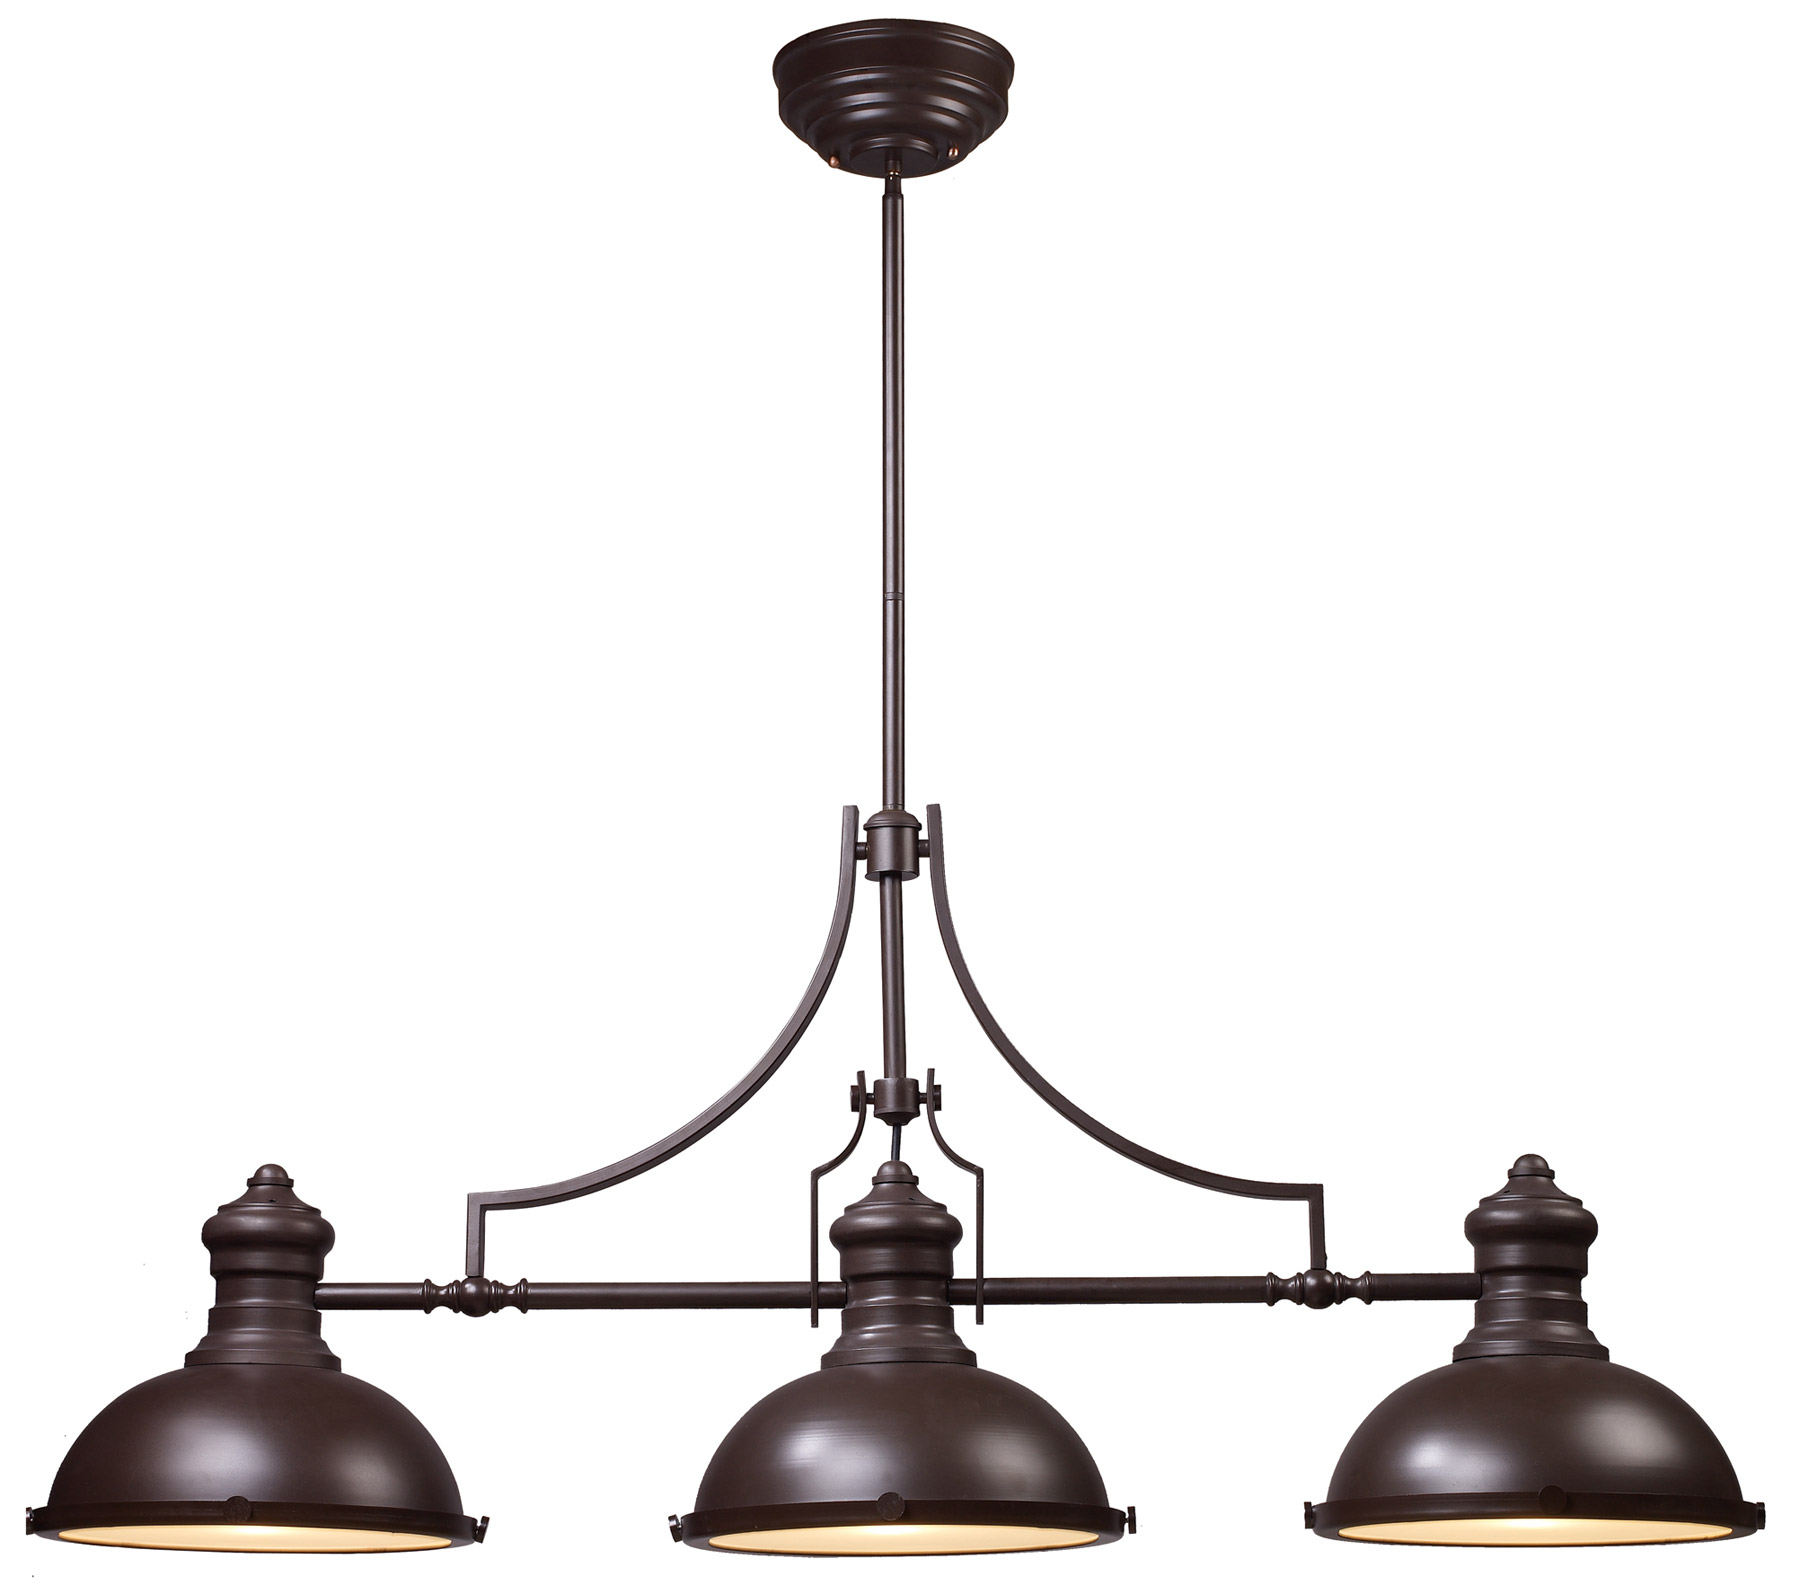 Elk lighting 66135 3 chadwick pool table light for Lampe suspendu noir